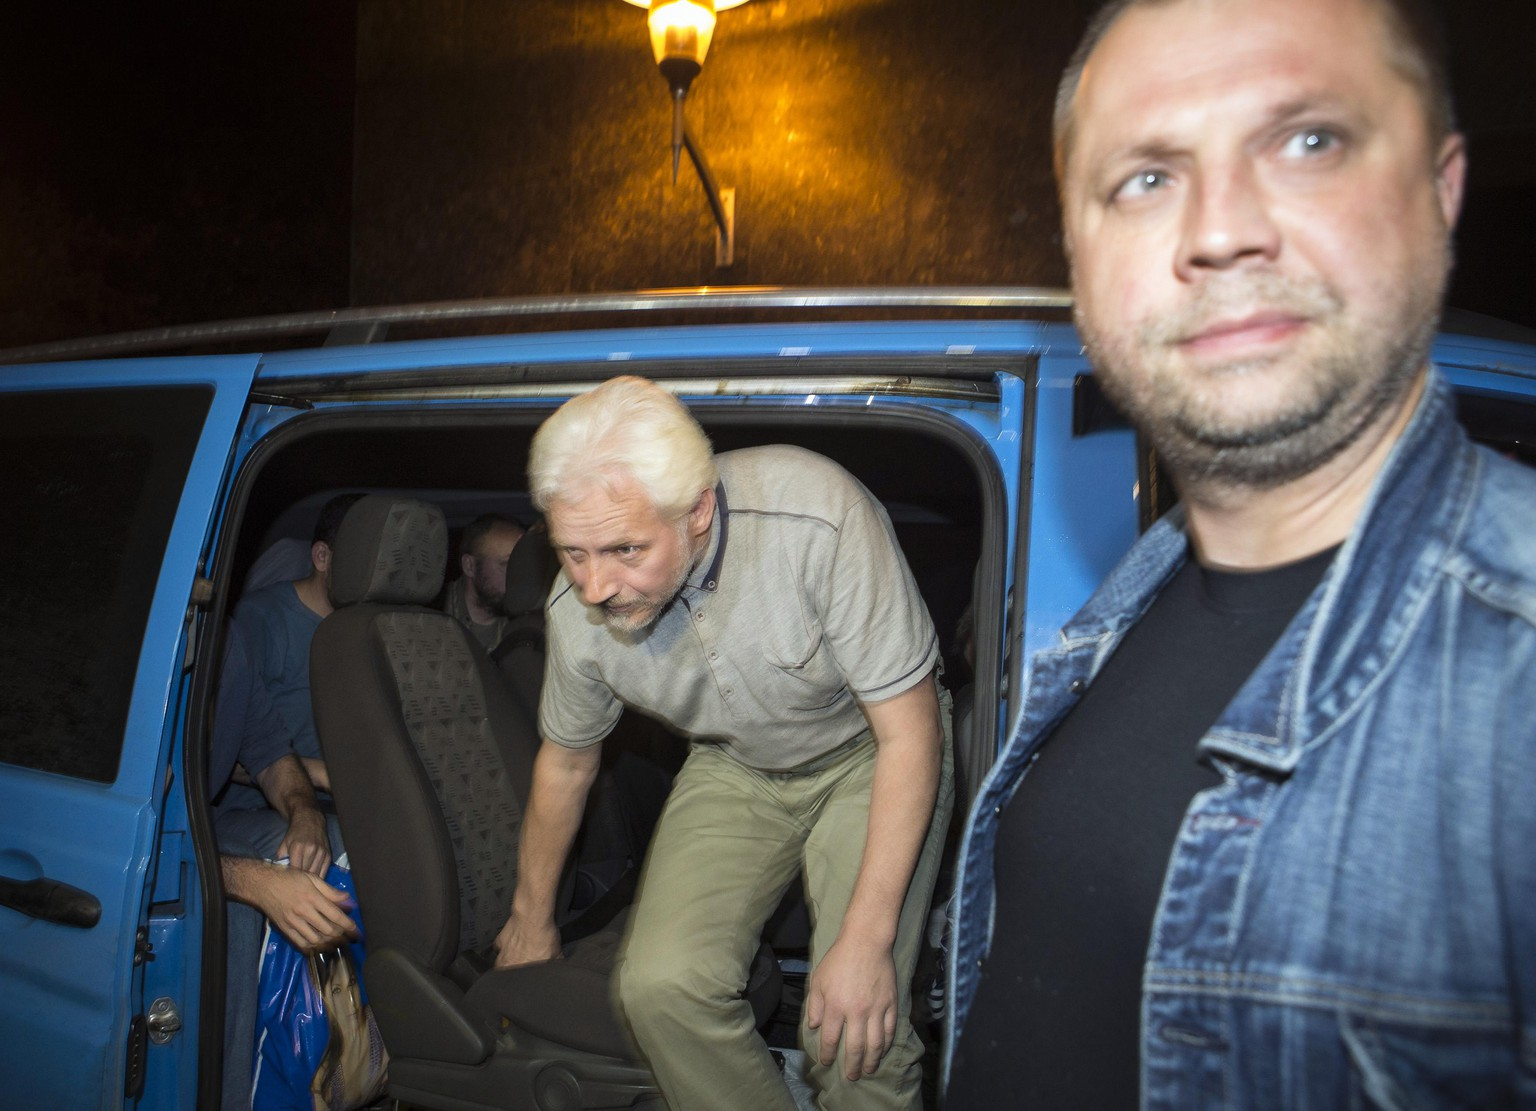 "An unidentified member of OSCE Special Monitoring Mission in Ukraine gets out of a vehicle next to Alexander Borodai (R), Prime Minister of the self proclaimed ""Donetsk People's Republic"", on arrival to the city of Donetsk after been released from captivity, June 27, 2014.  REUTERS/Shamil Zhumatov  (UKRAINE - Tags: POLITICS CIVIL UNREST TPX IMAGES OF THE DAY)"